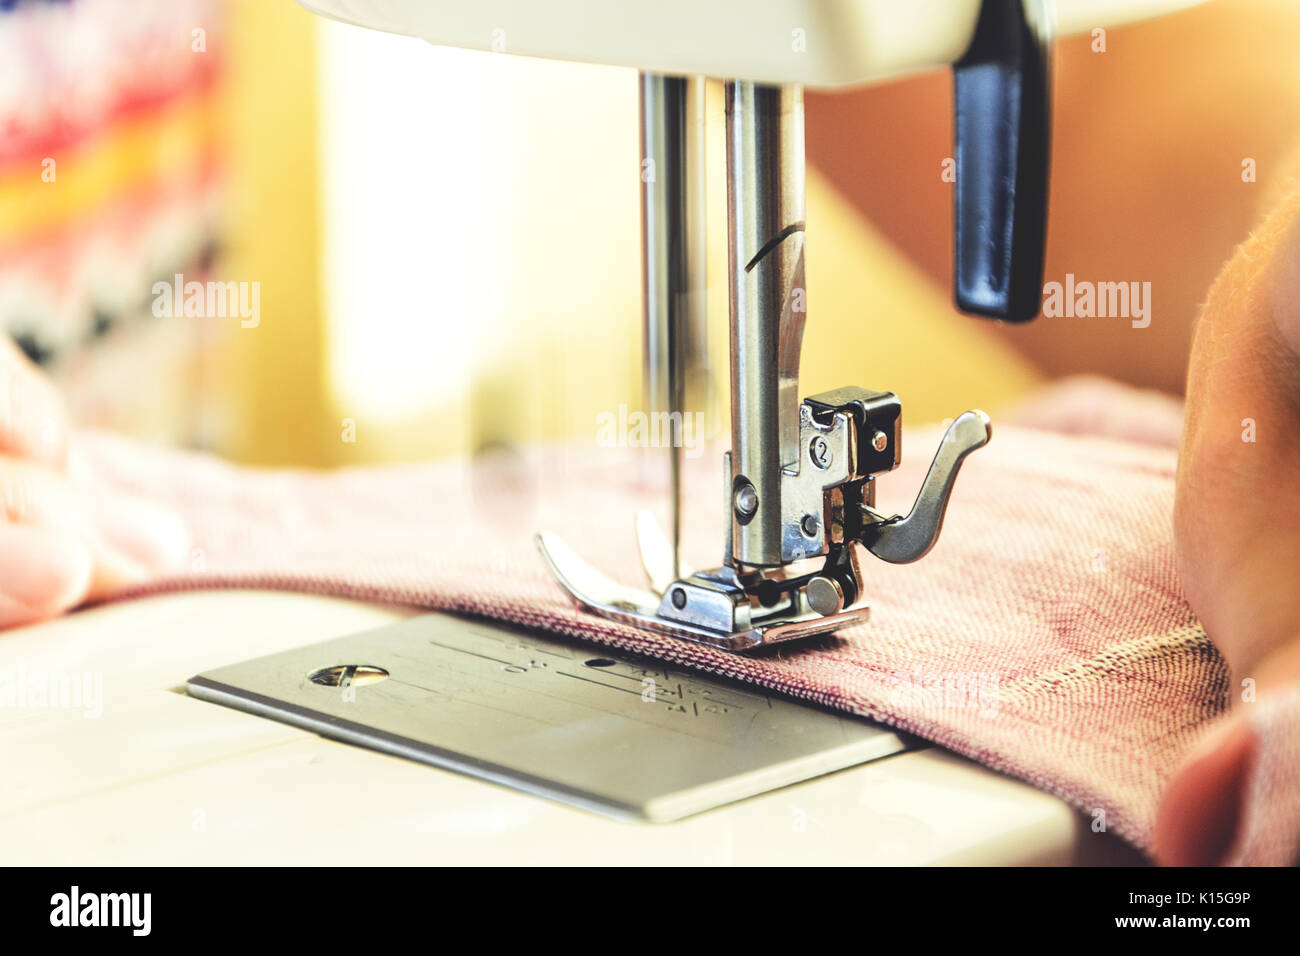 Sewing process on the sewing machine - Stock Image